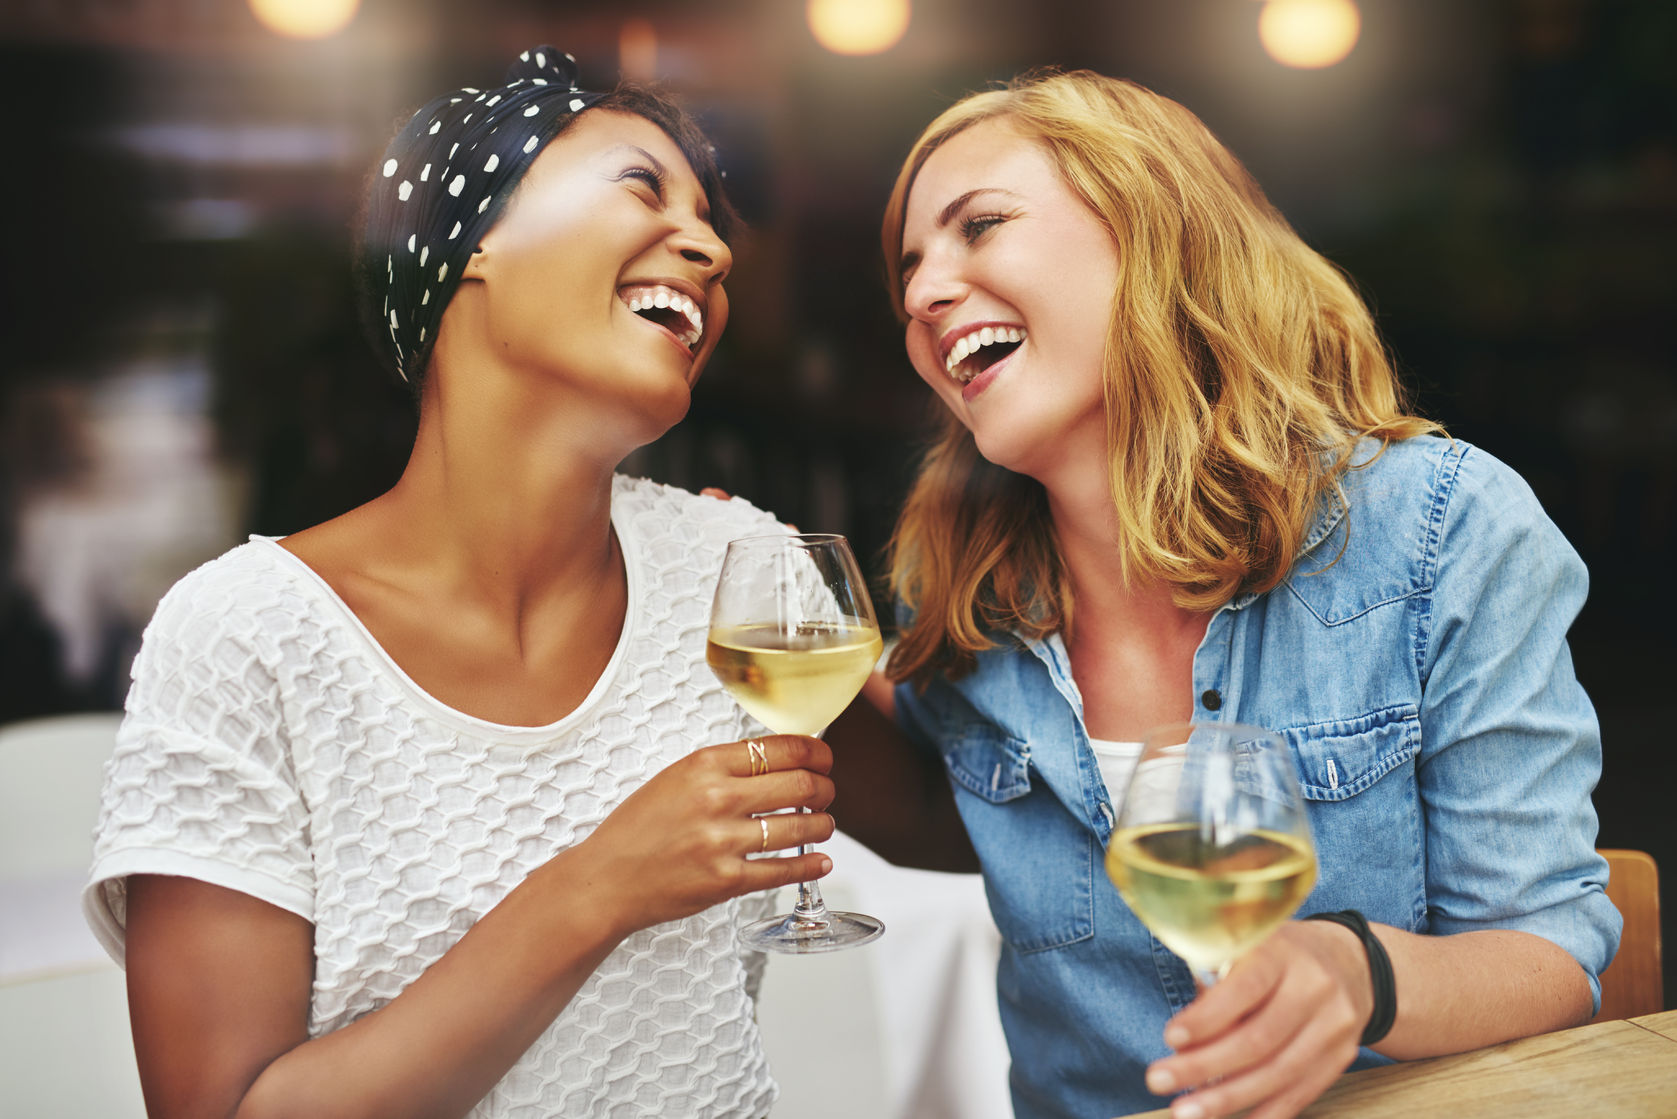 46626161 - two young attractive vivacious multiethnic female friends celebrating and laughing together over a glass of white wine